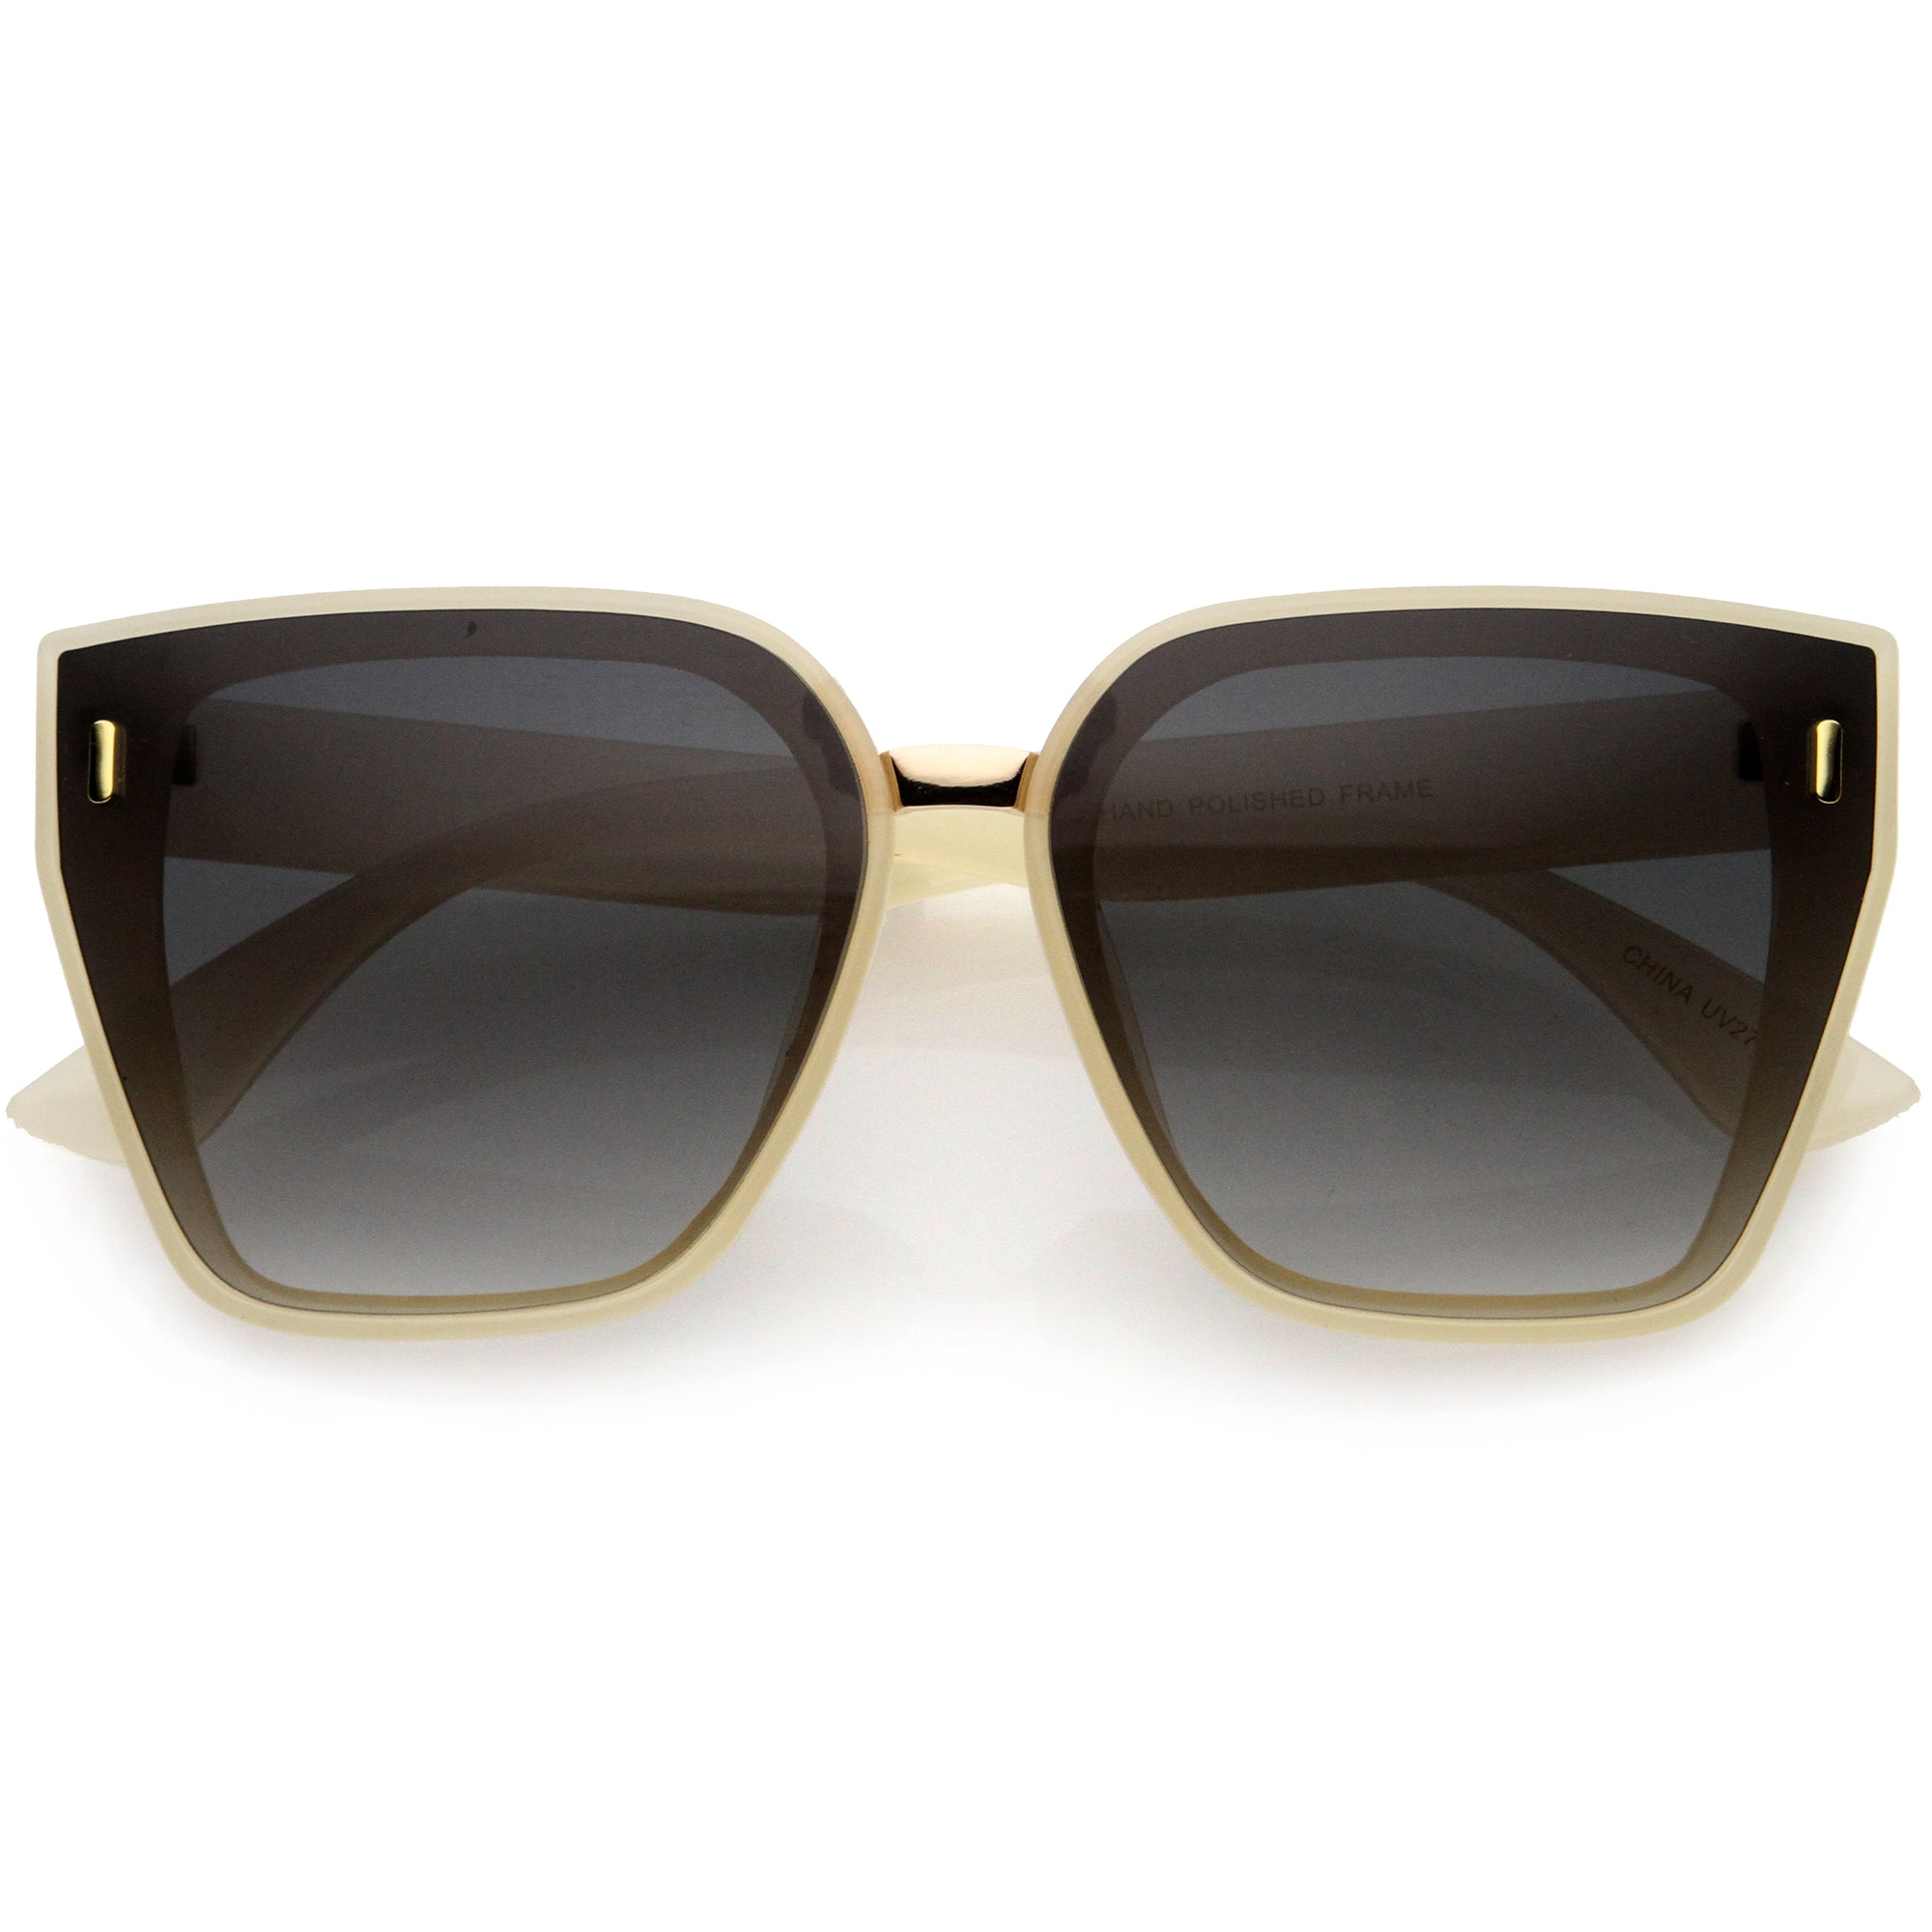 Posh Oversize Two-Tone Metal Nose Bridge Temple Rivet Accent Cat Eye Sunglasses D036